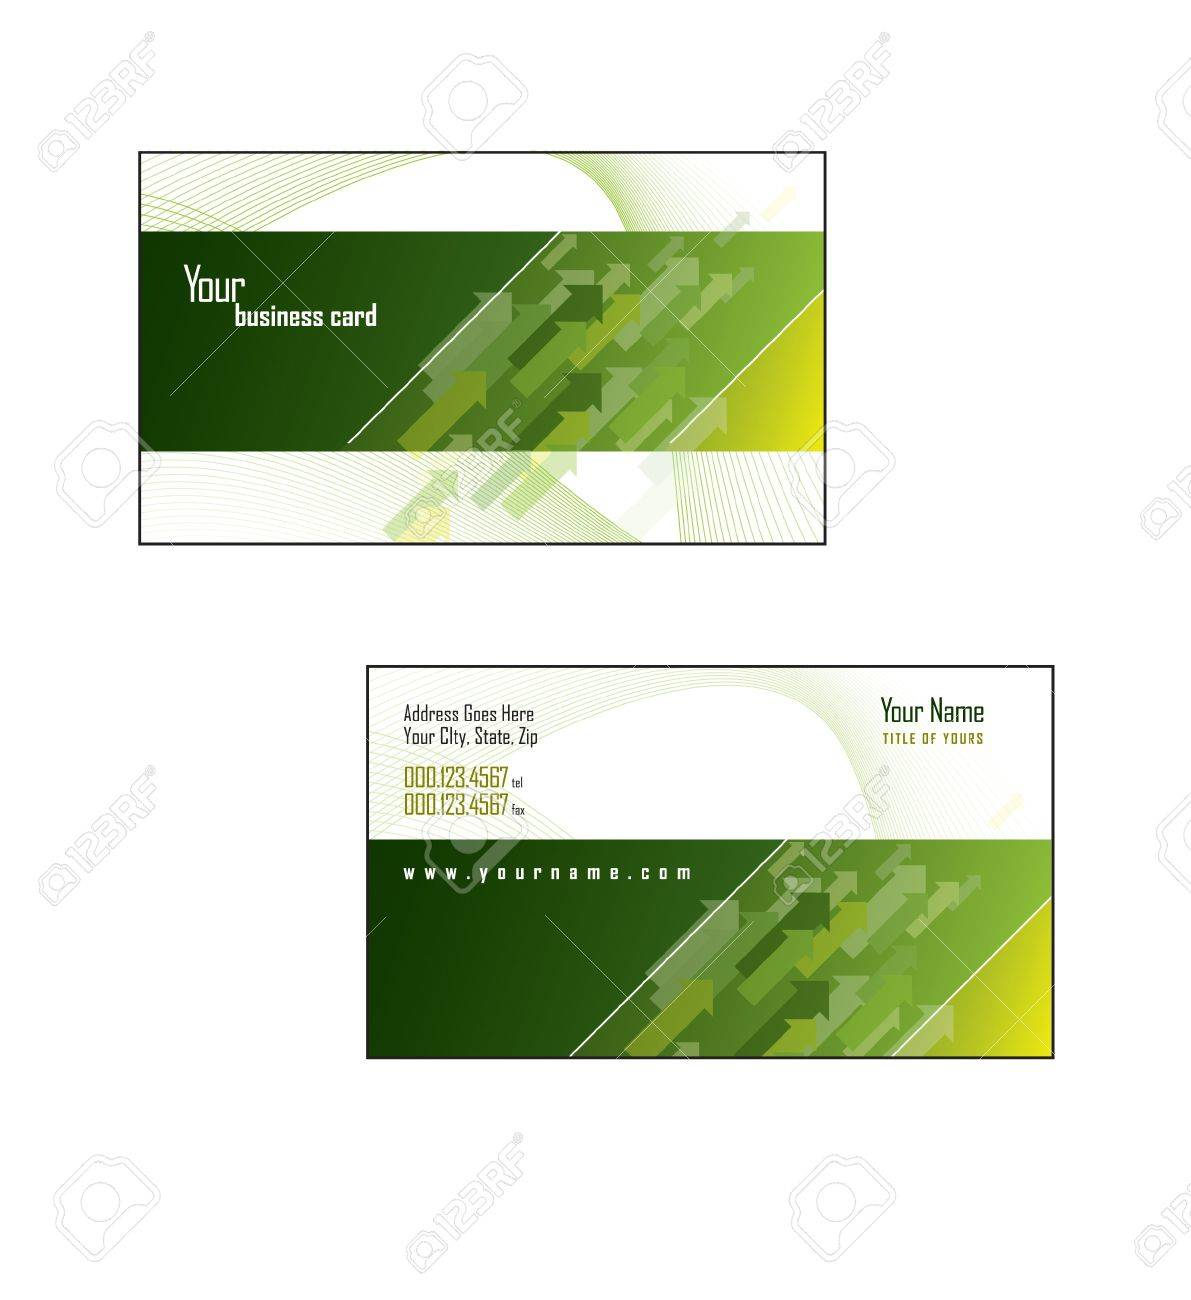 Business Card Template - 14533749